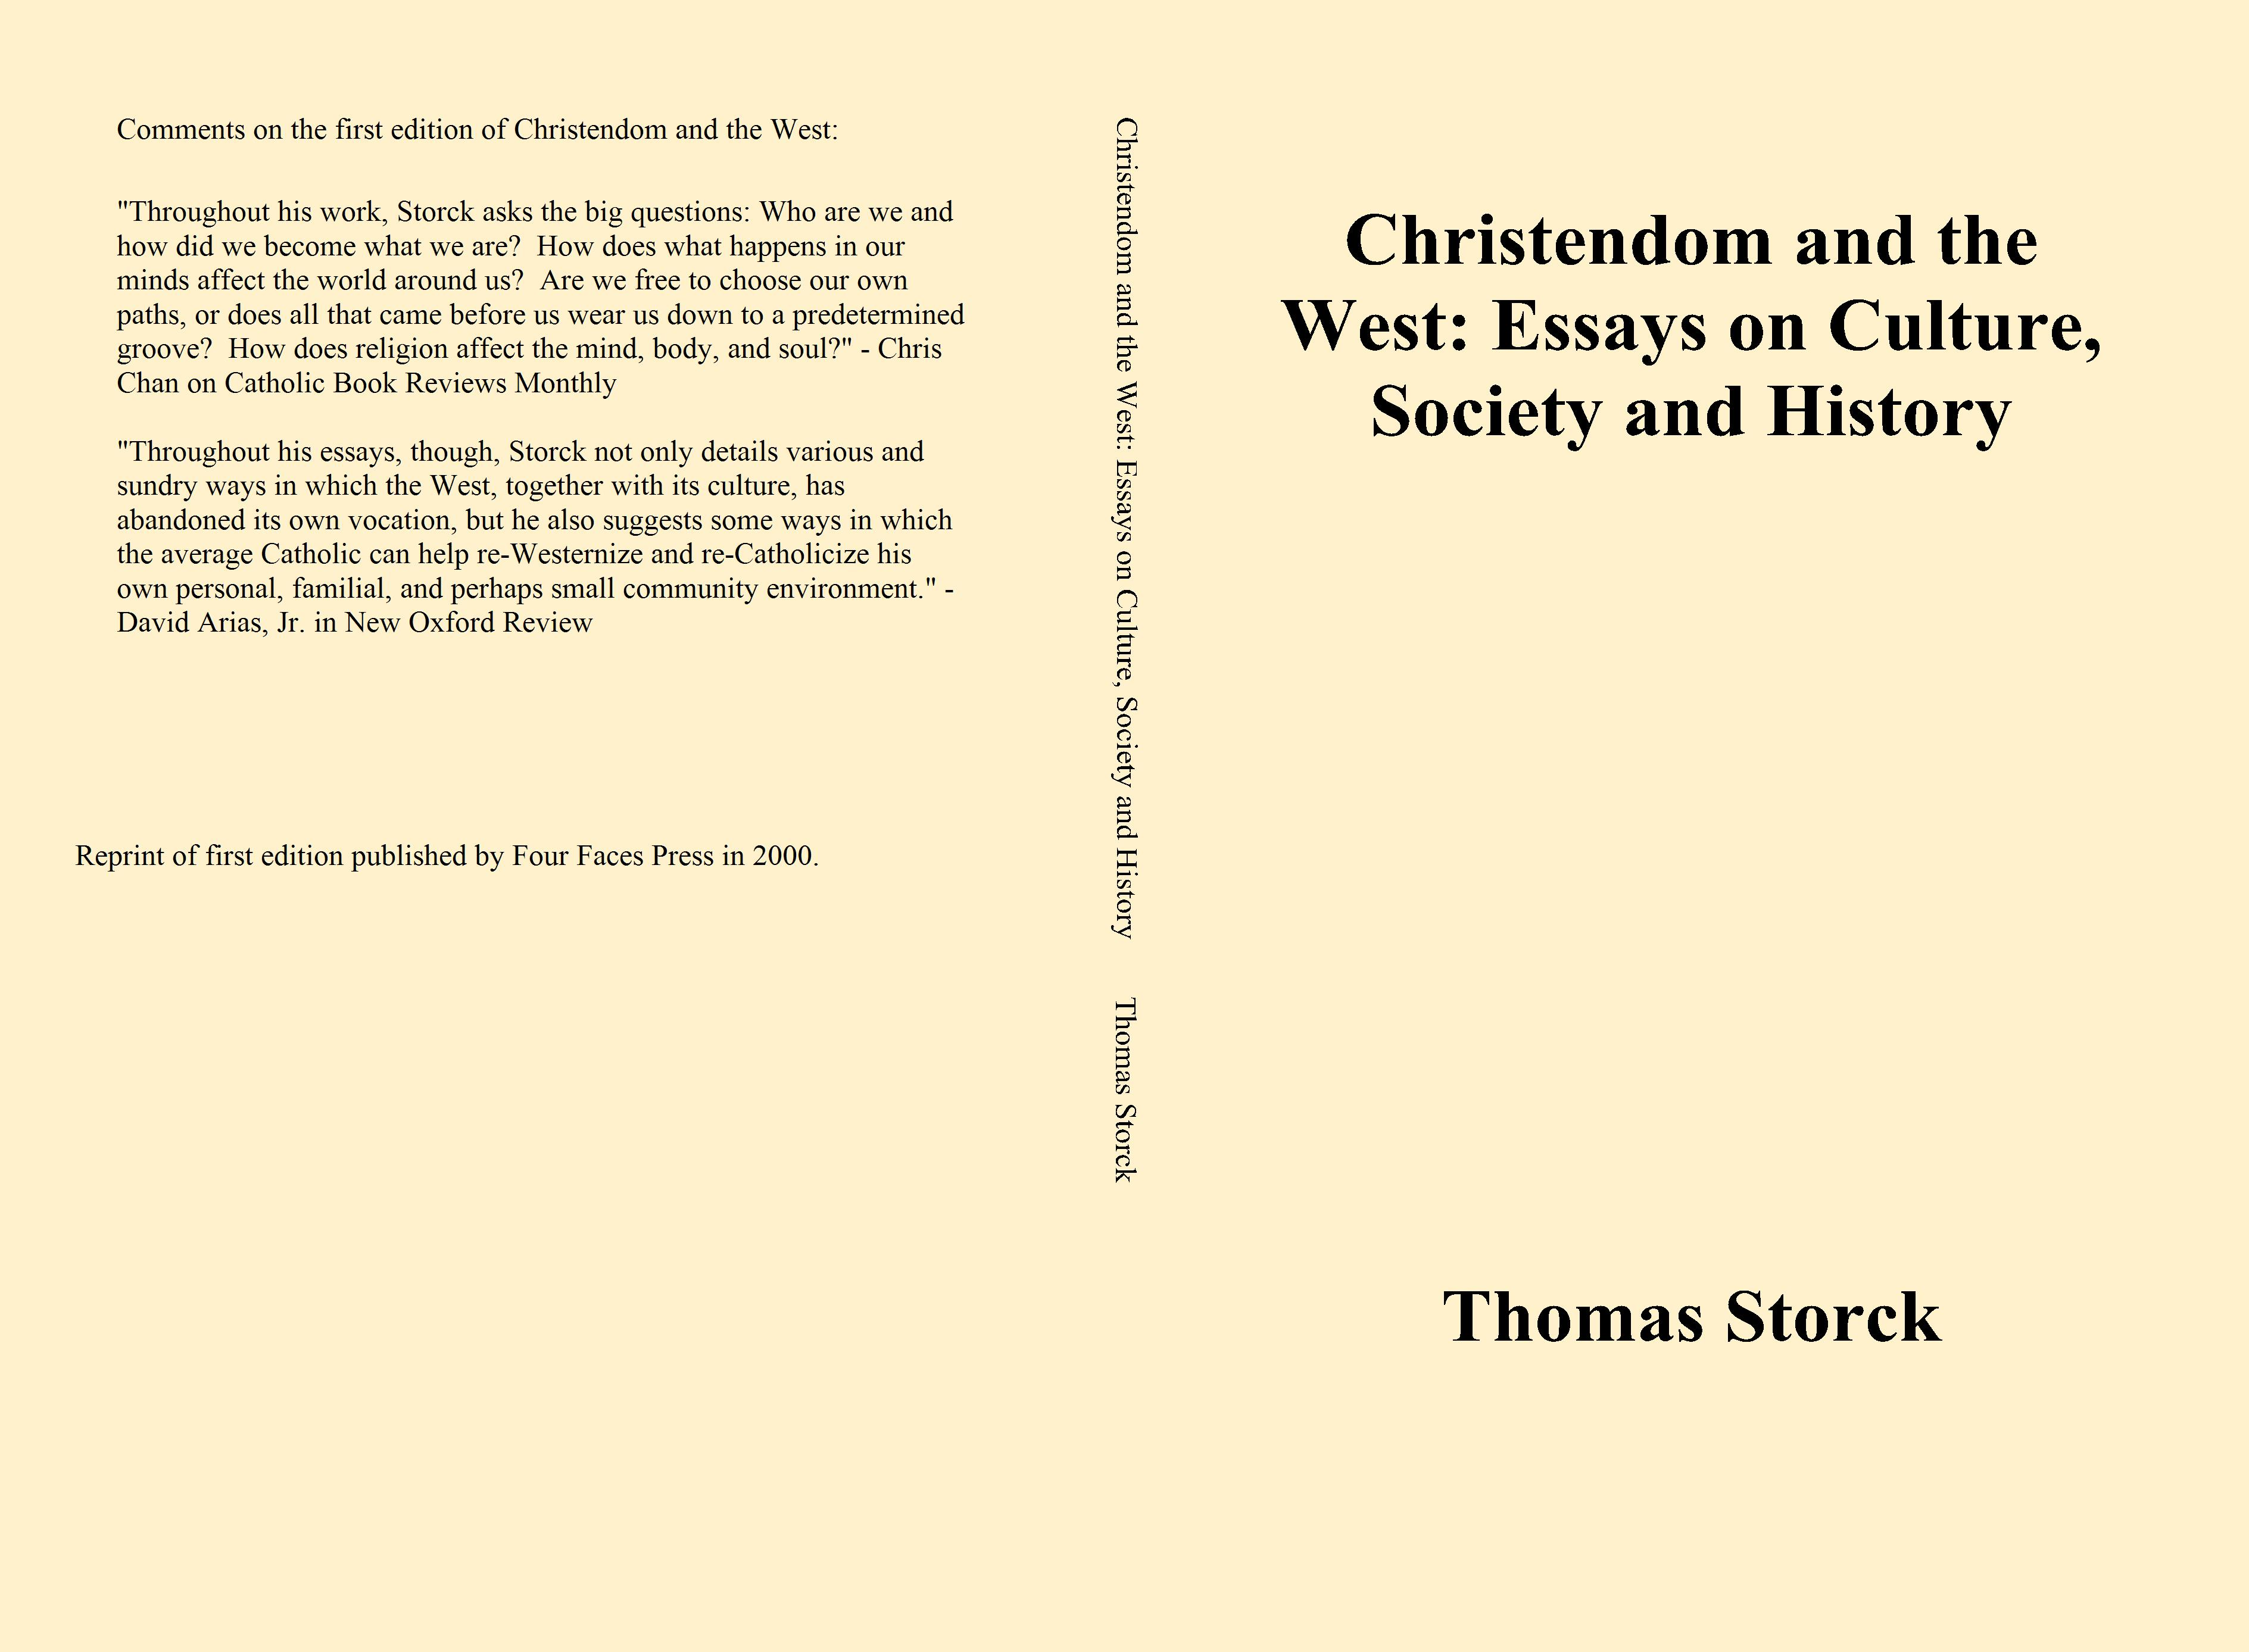 essays on culture doorway christendom and the west essays on culture society and history